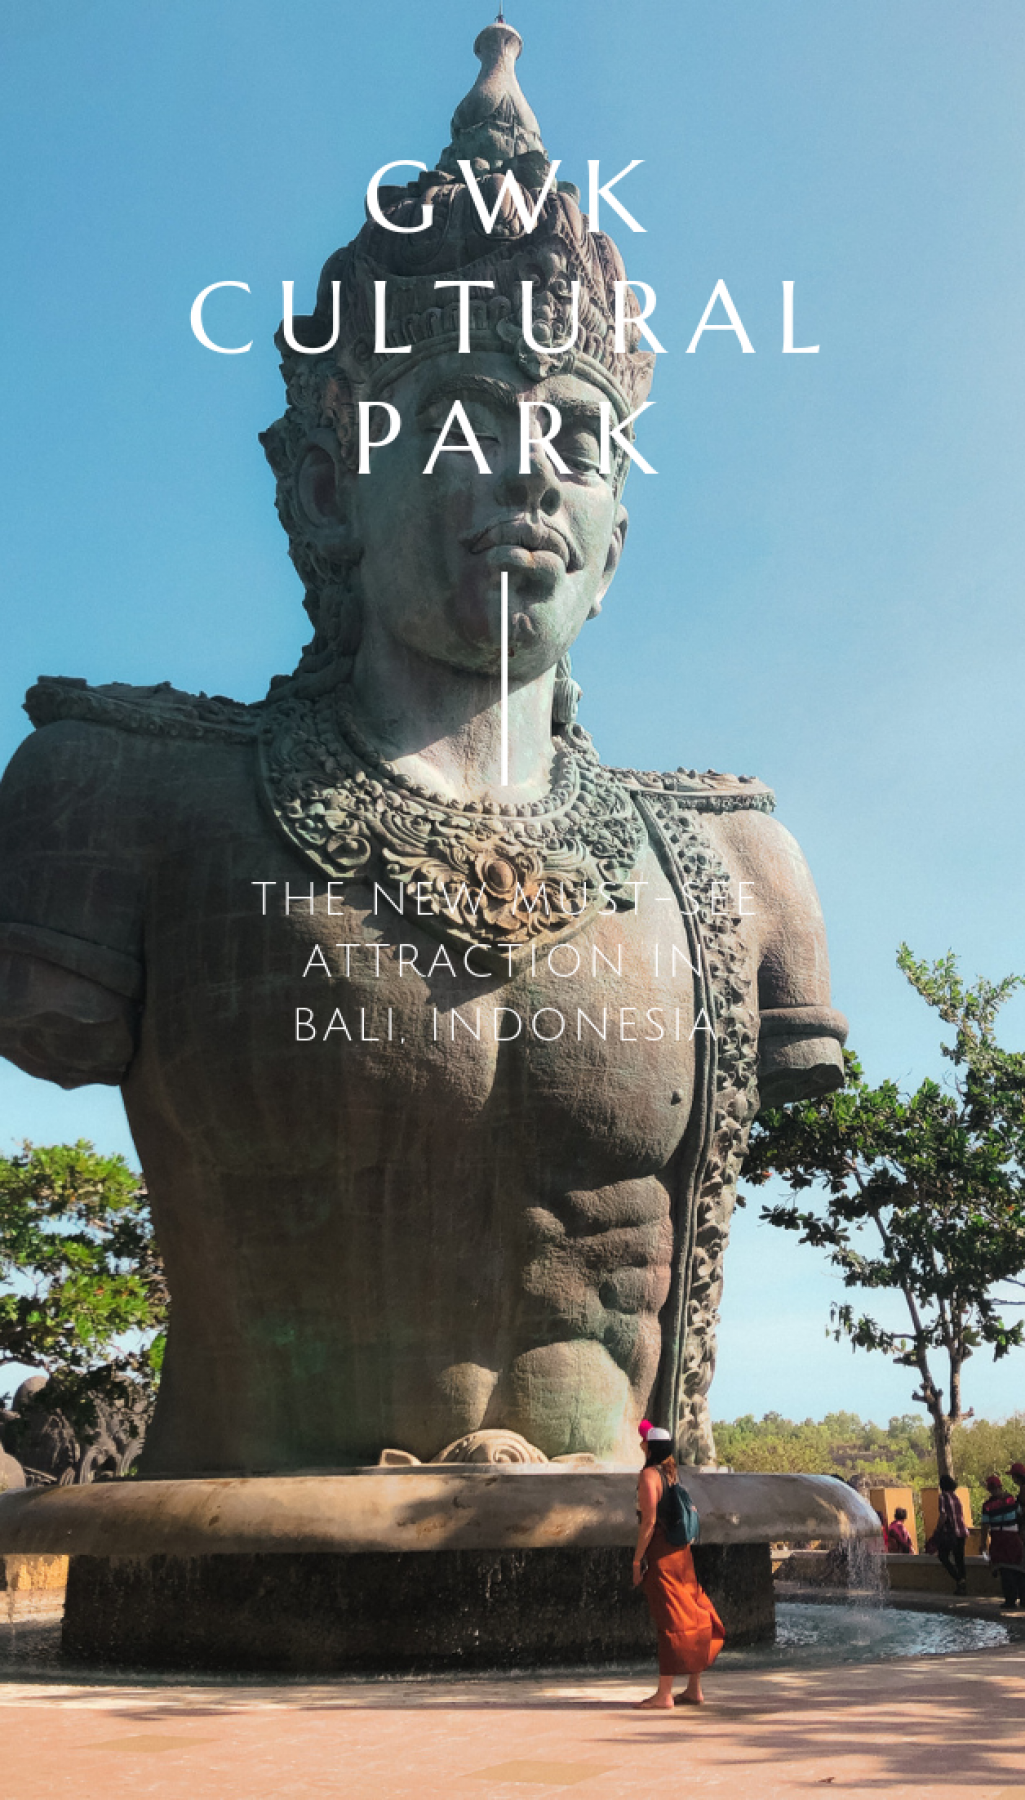 Want to see one of the most giant statues in the world? At GWK Cultural Park in Bali, Indonesia, you can view this monument and more. A must visit on the Island of the Gods.